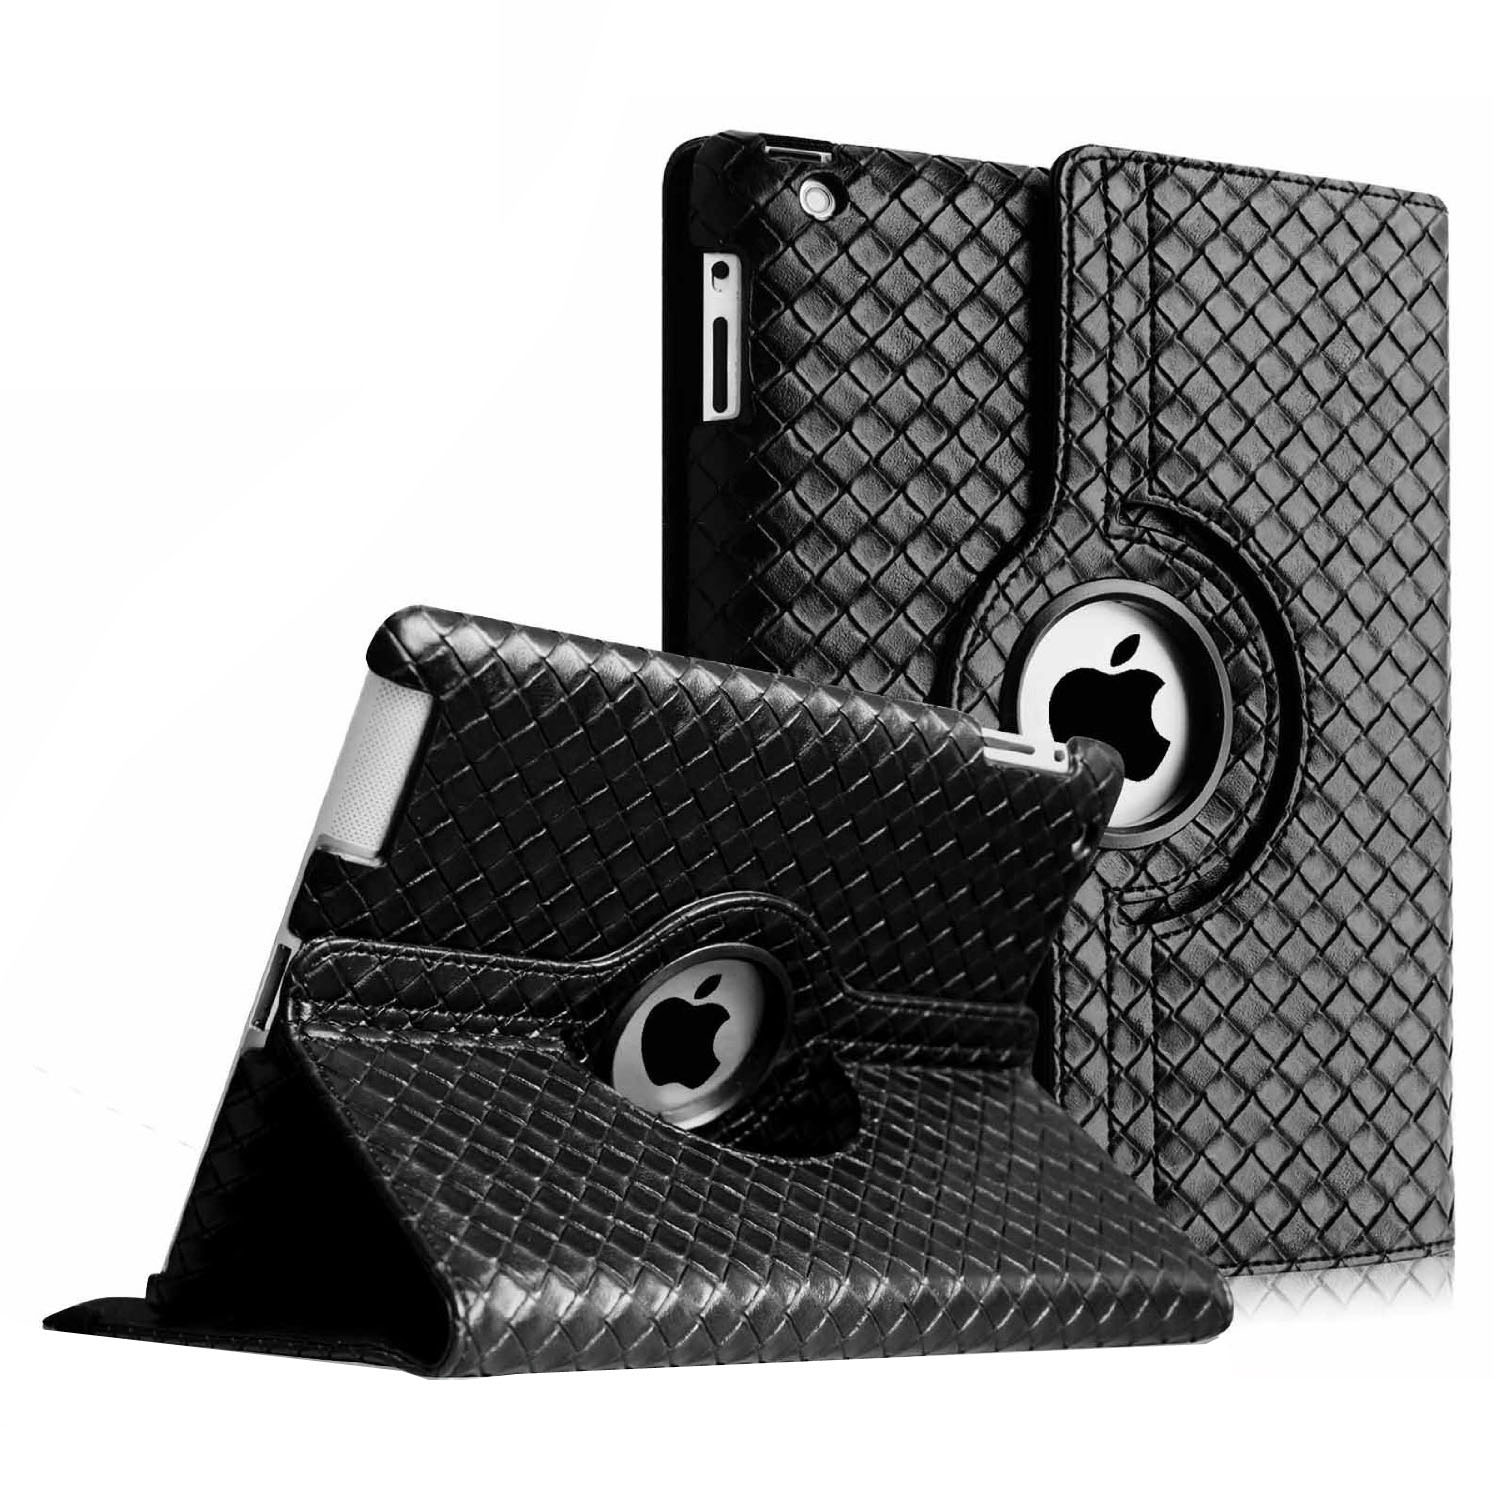 Apple iPad 2 , iPad 3 & iPad 4 with Retina Display Case - Fintie Knot Series 360 Degree Rotating Stand Smart Cover,Black